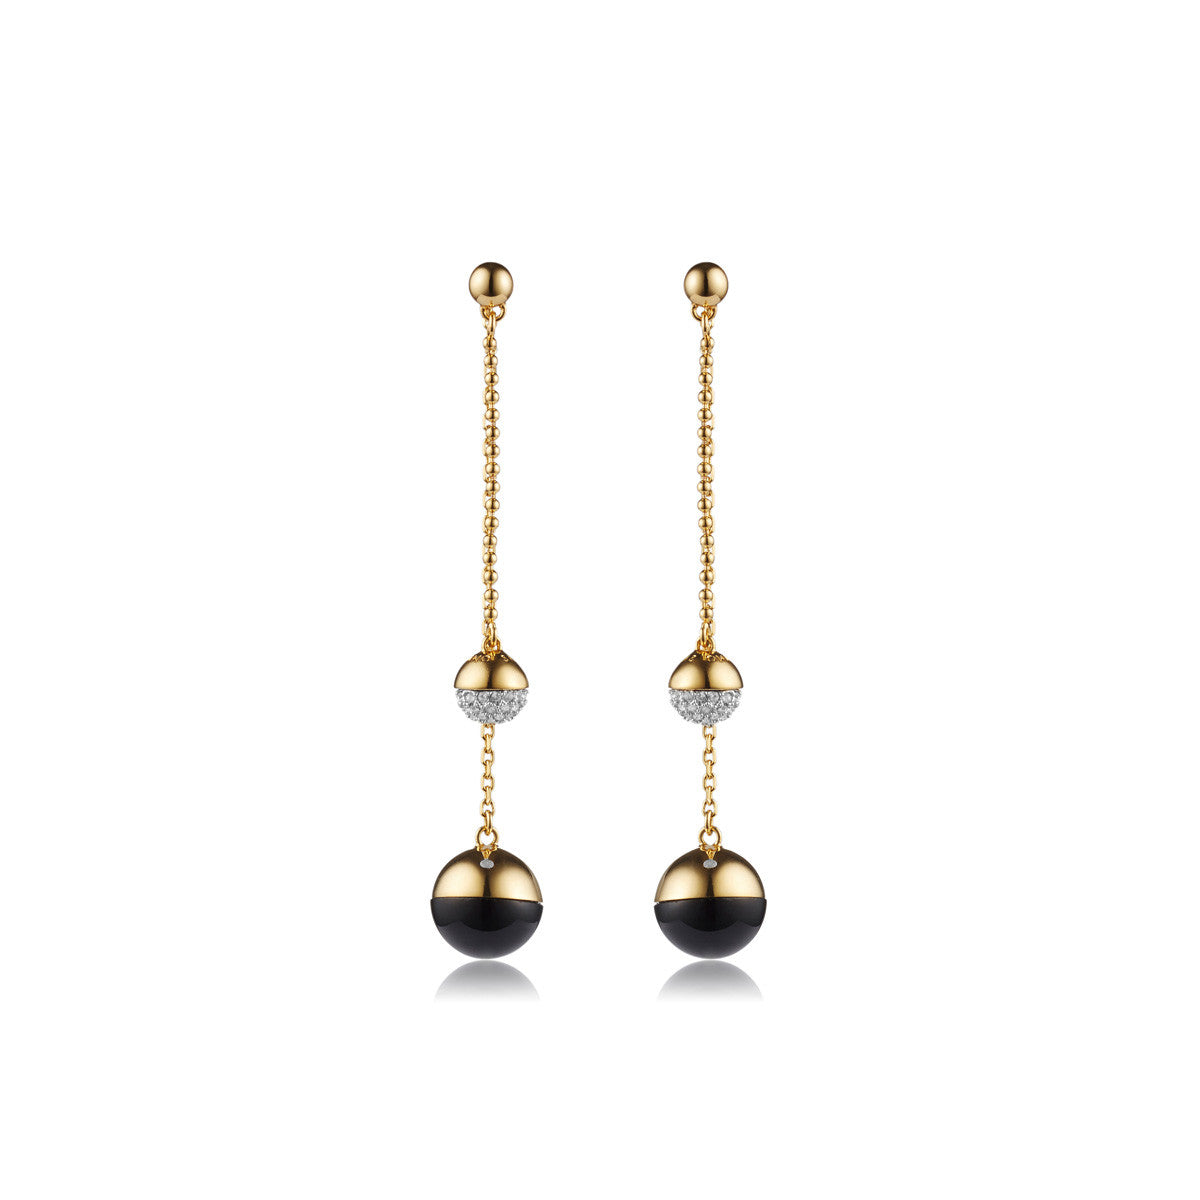 Solid brass, 18K gold plated Pendulus earrings hang with a black onyx stone and set with Swarovski® crystal pavè detailing - front